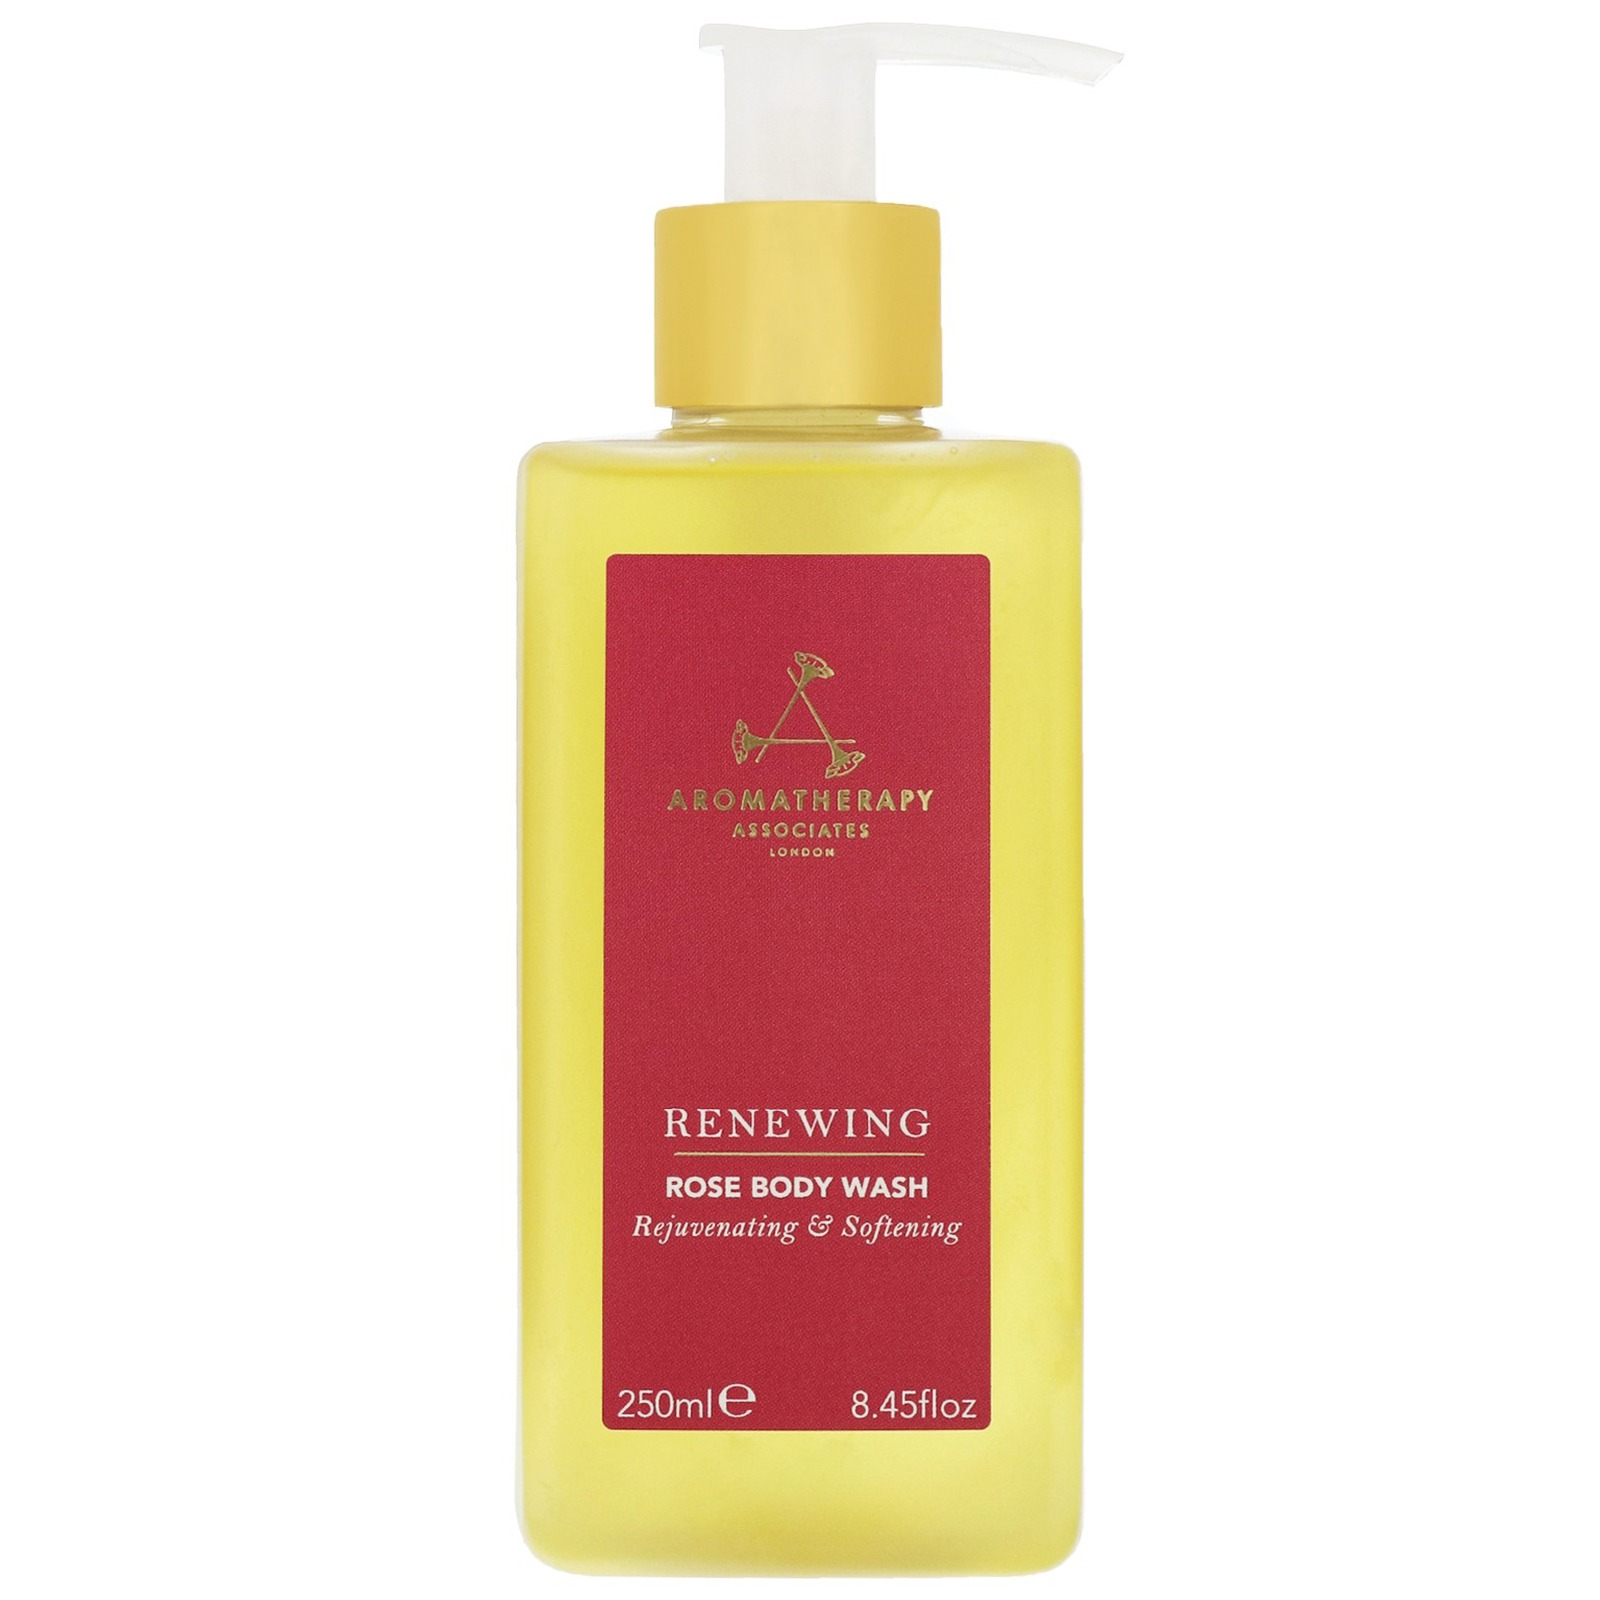 Aromatherapy Associates Rose Renewing Rose Body Wash 250ml